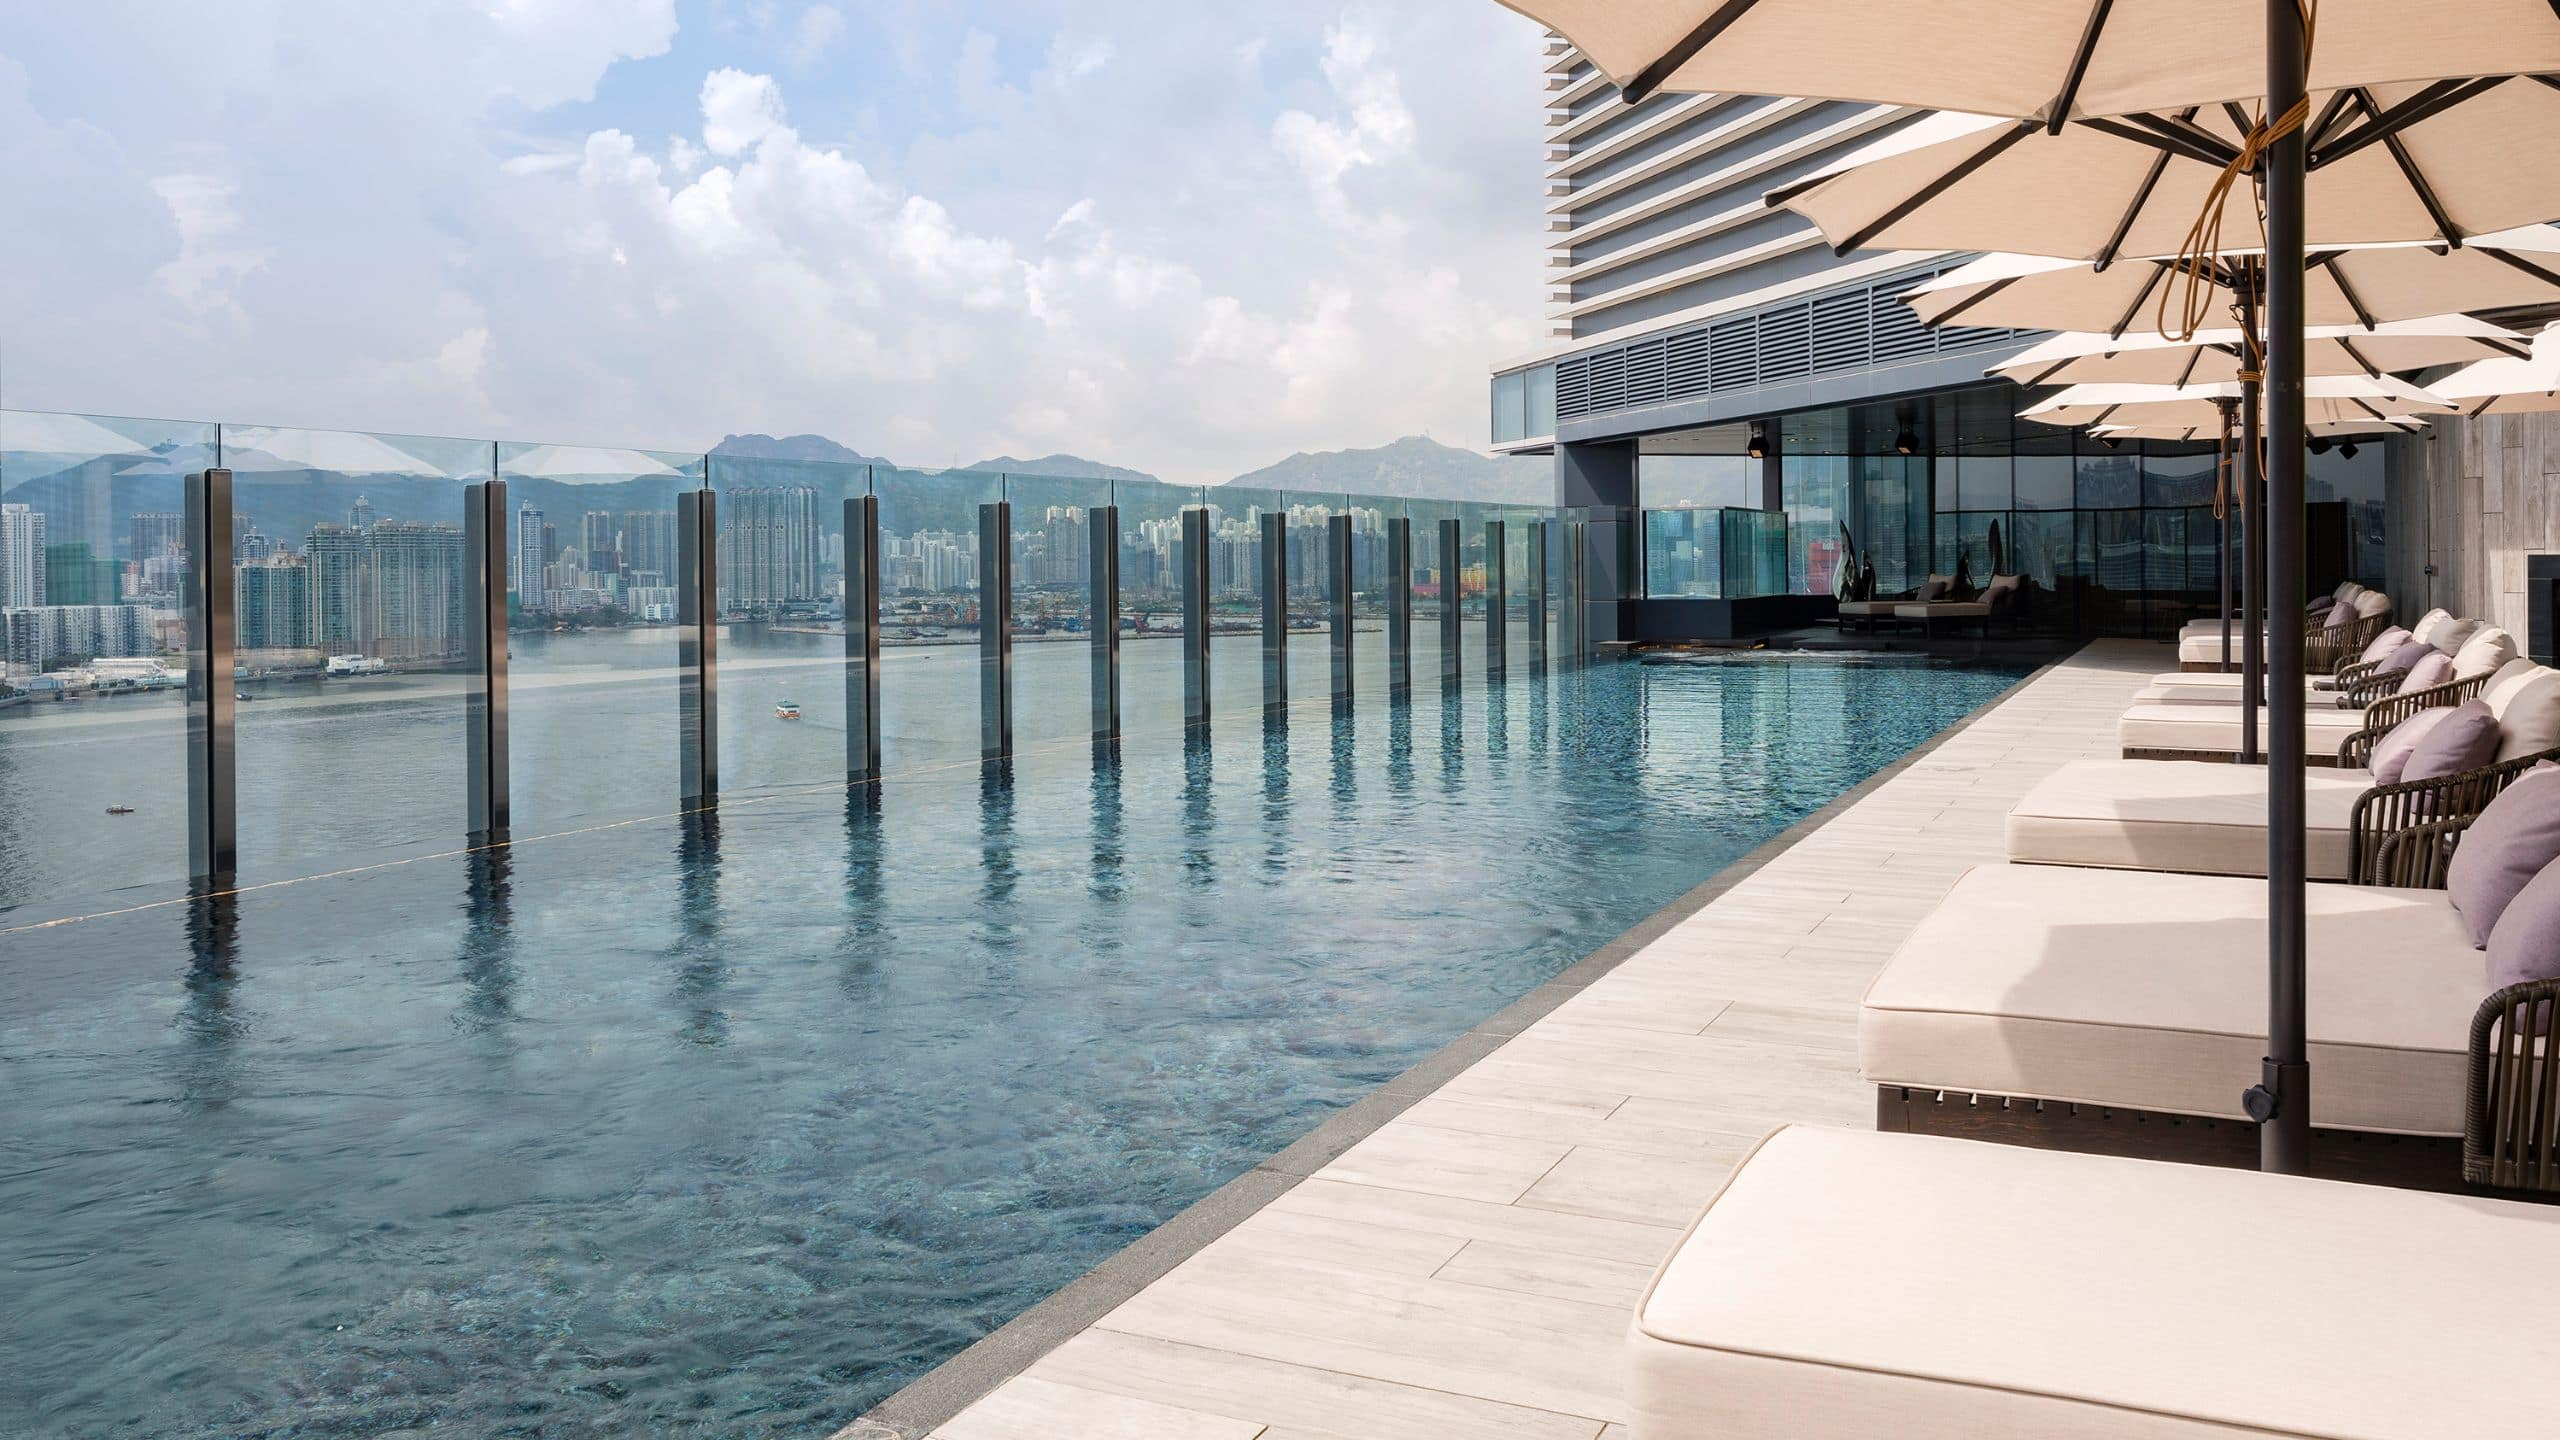 Luxury Harbourfront City Hotel | Hyatt Centric Victoria Harbour Hong Kong